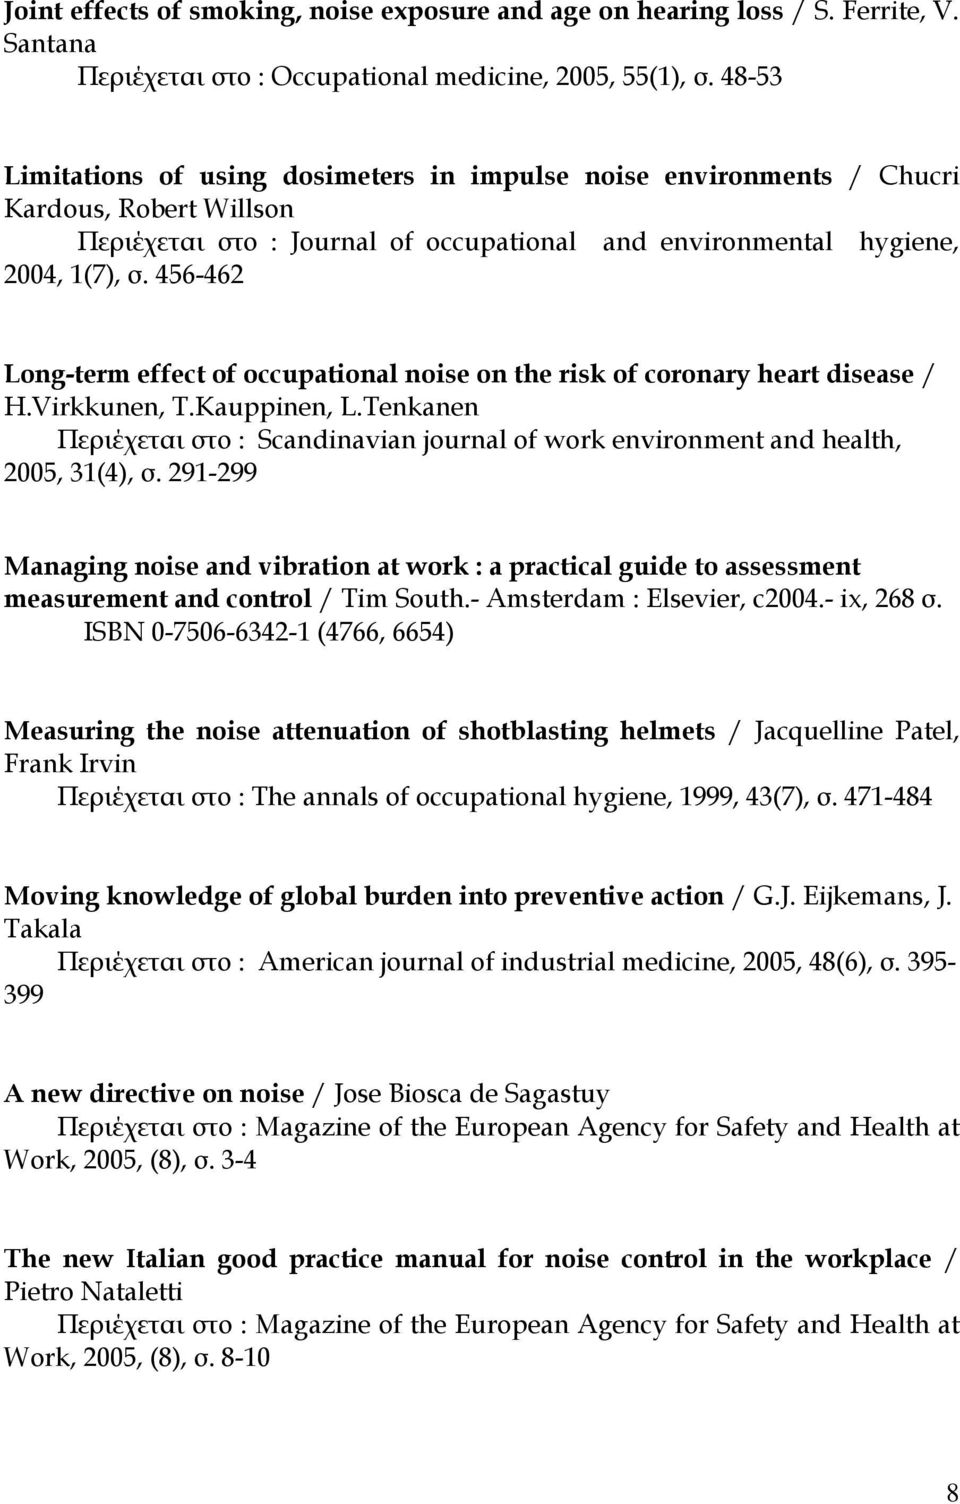 456-462 Long-term effect of occupational noise on the risk of coronary heart disease / H.Virkkunen, T.Kauppinen, L.